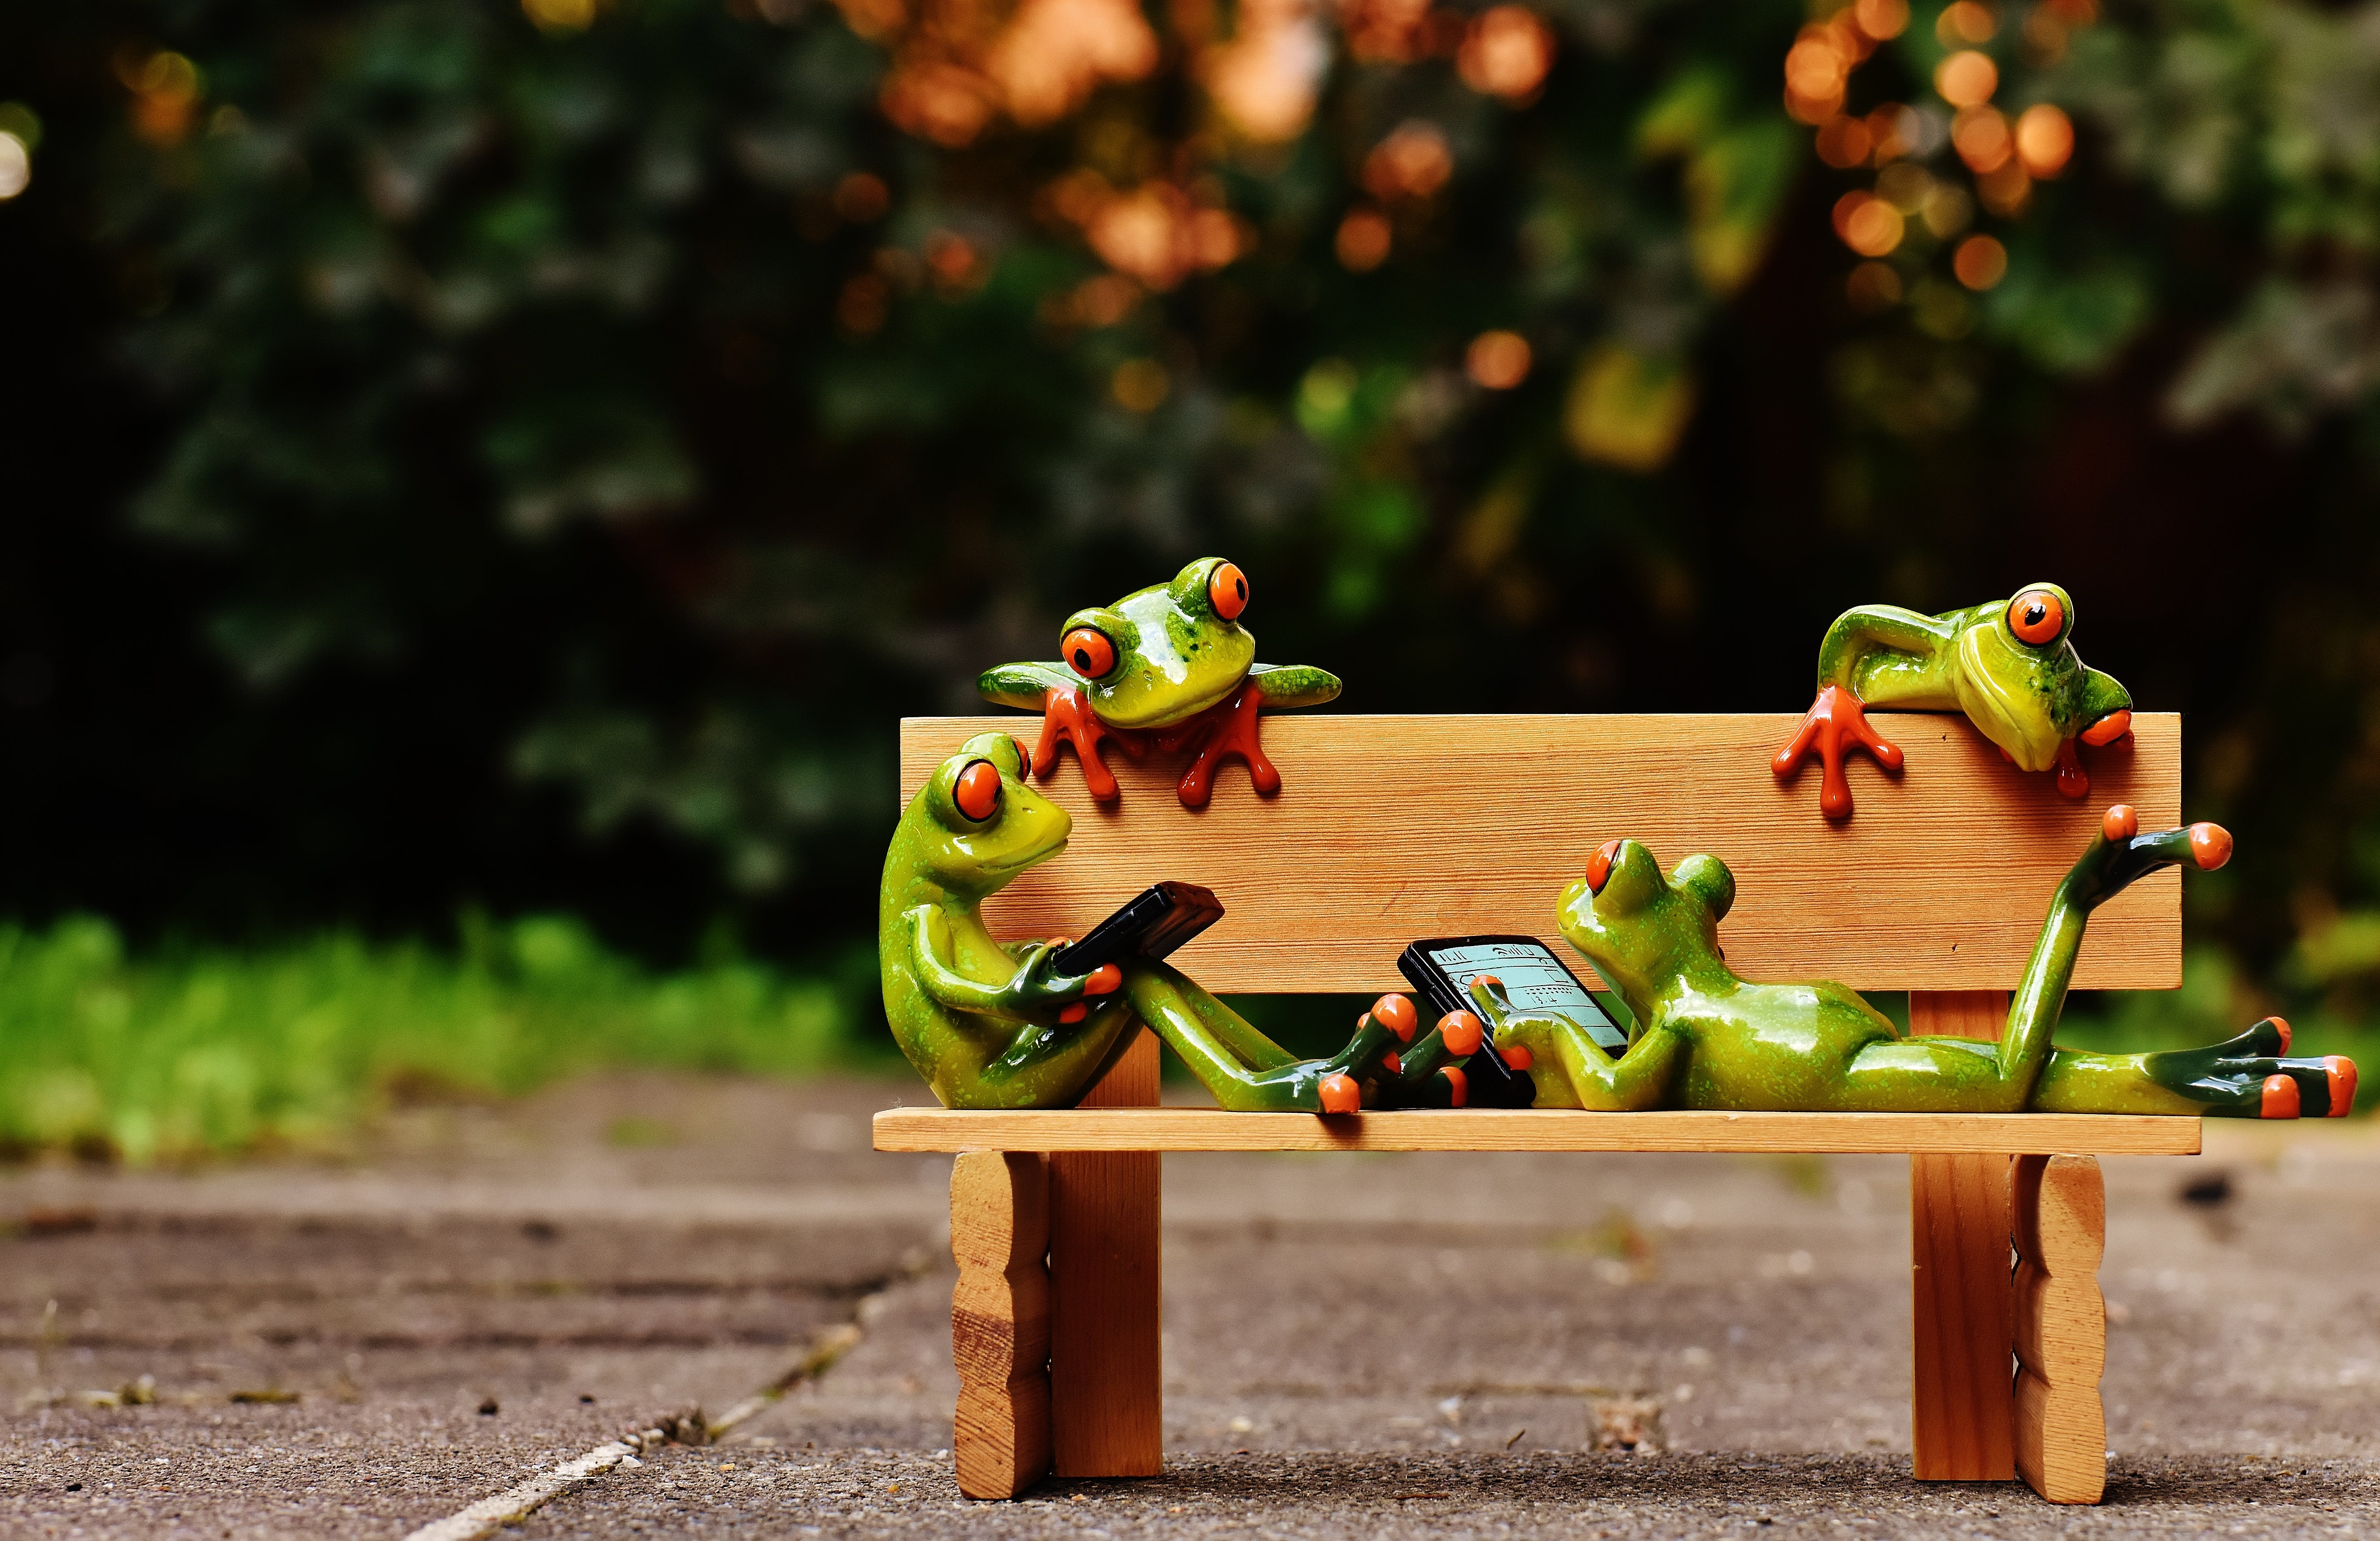 Free stock photo of bench, relaxation, animal, cute